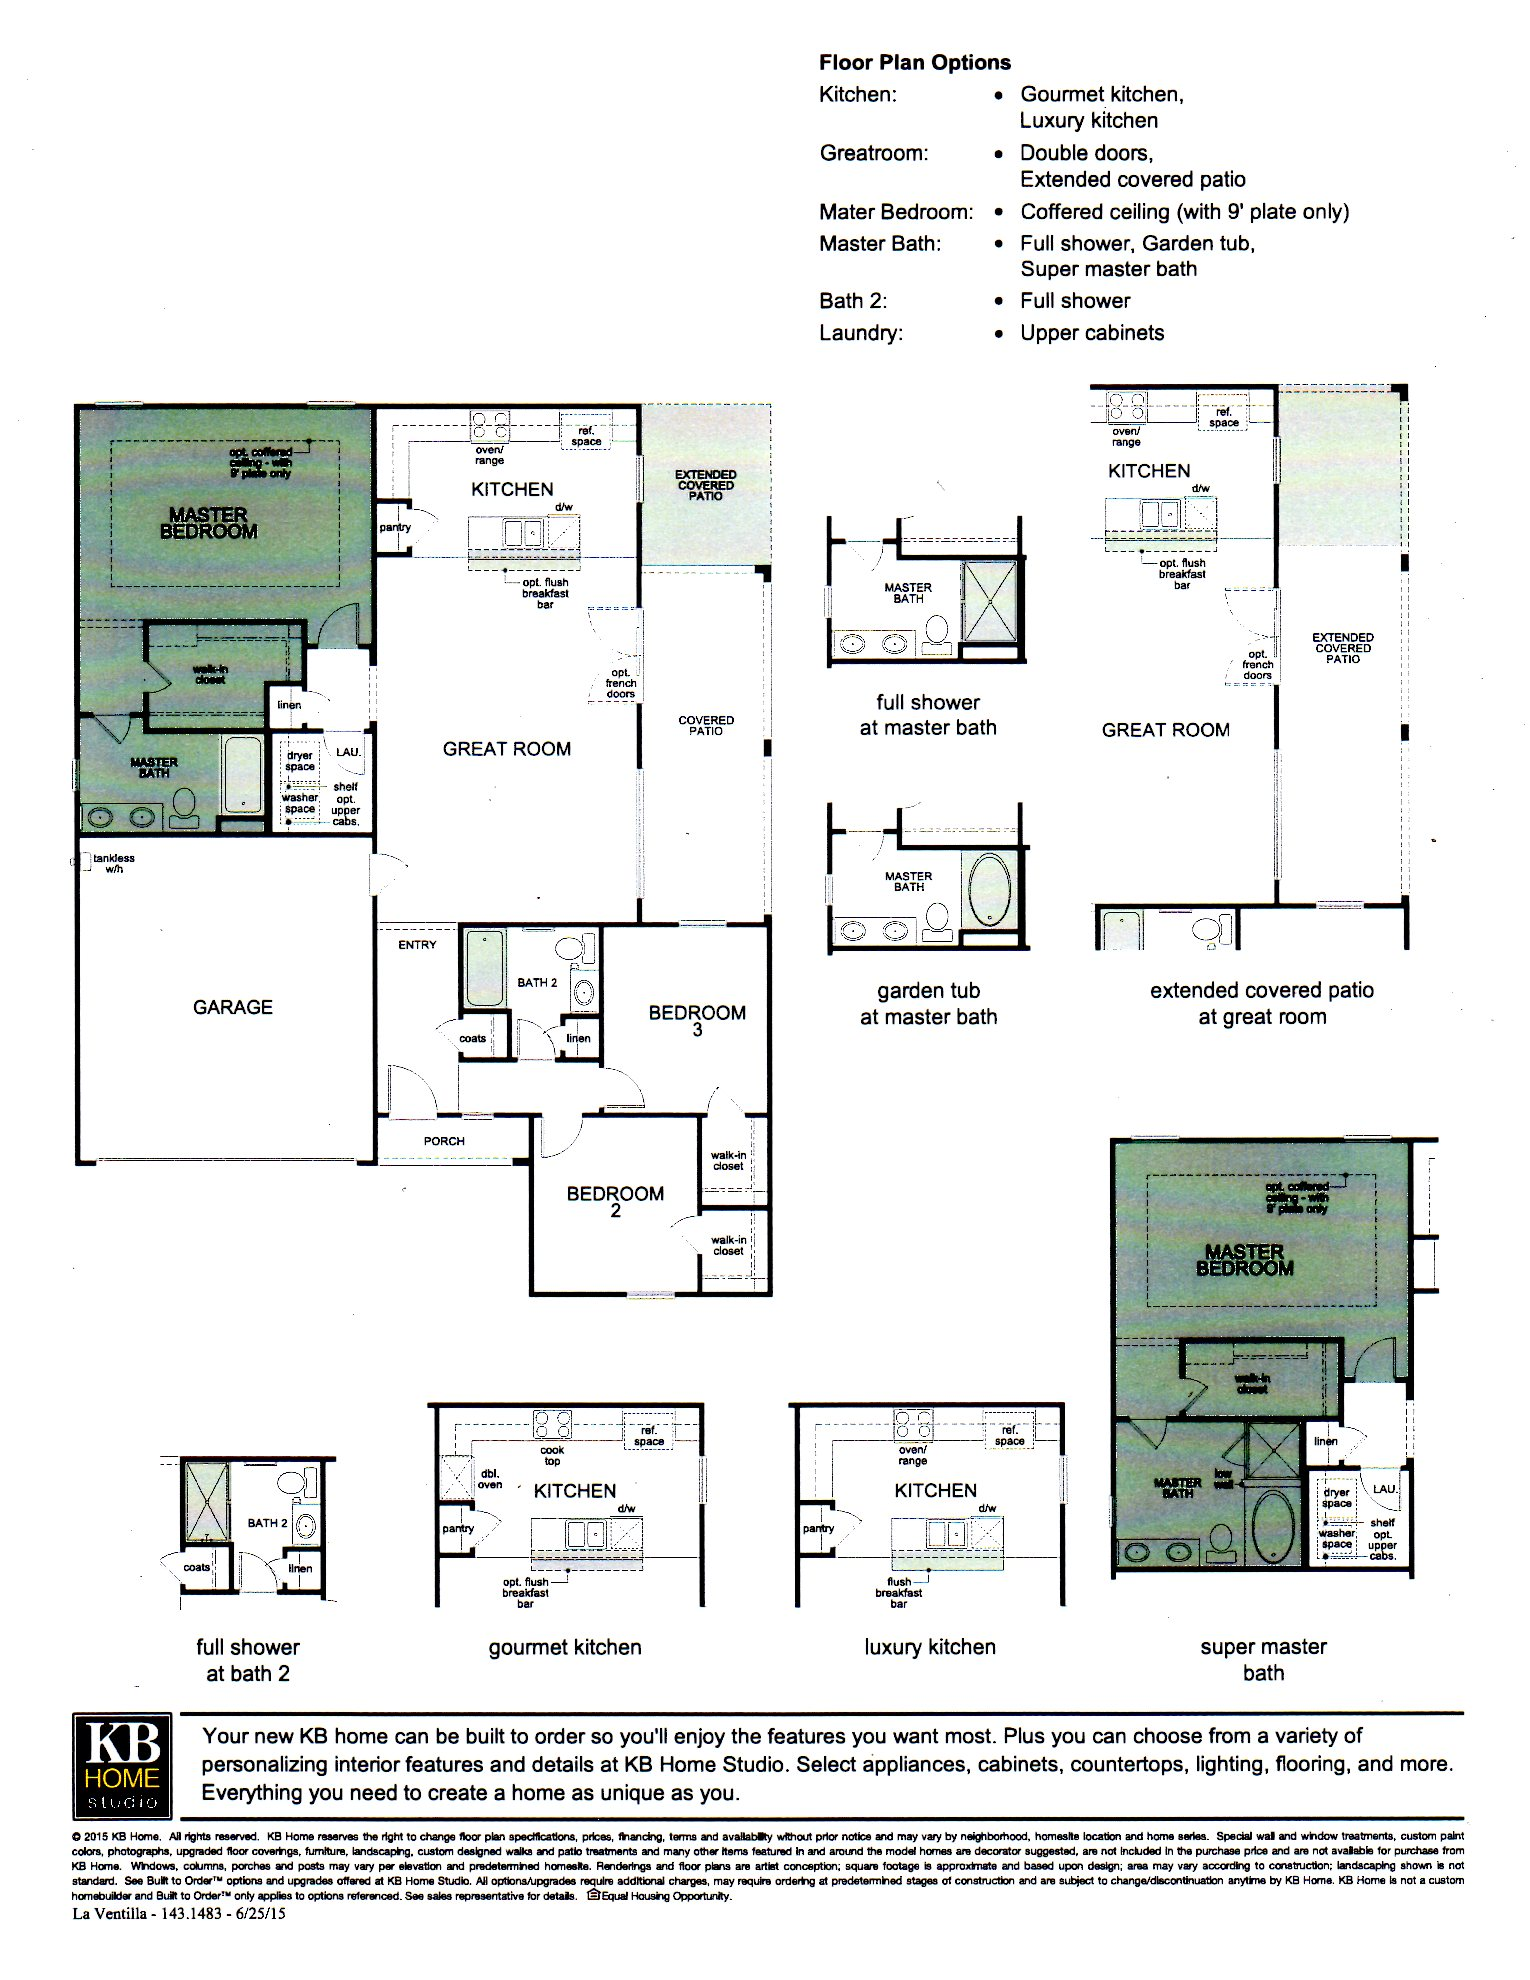 floor plans for kb homes. PLAN 1483  Single Level Home New Homes For Sale Goodyear Avondale Real Estate Litchfield Park